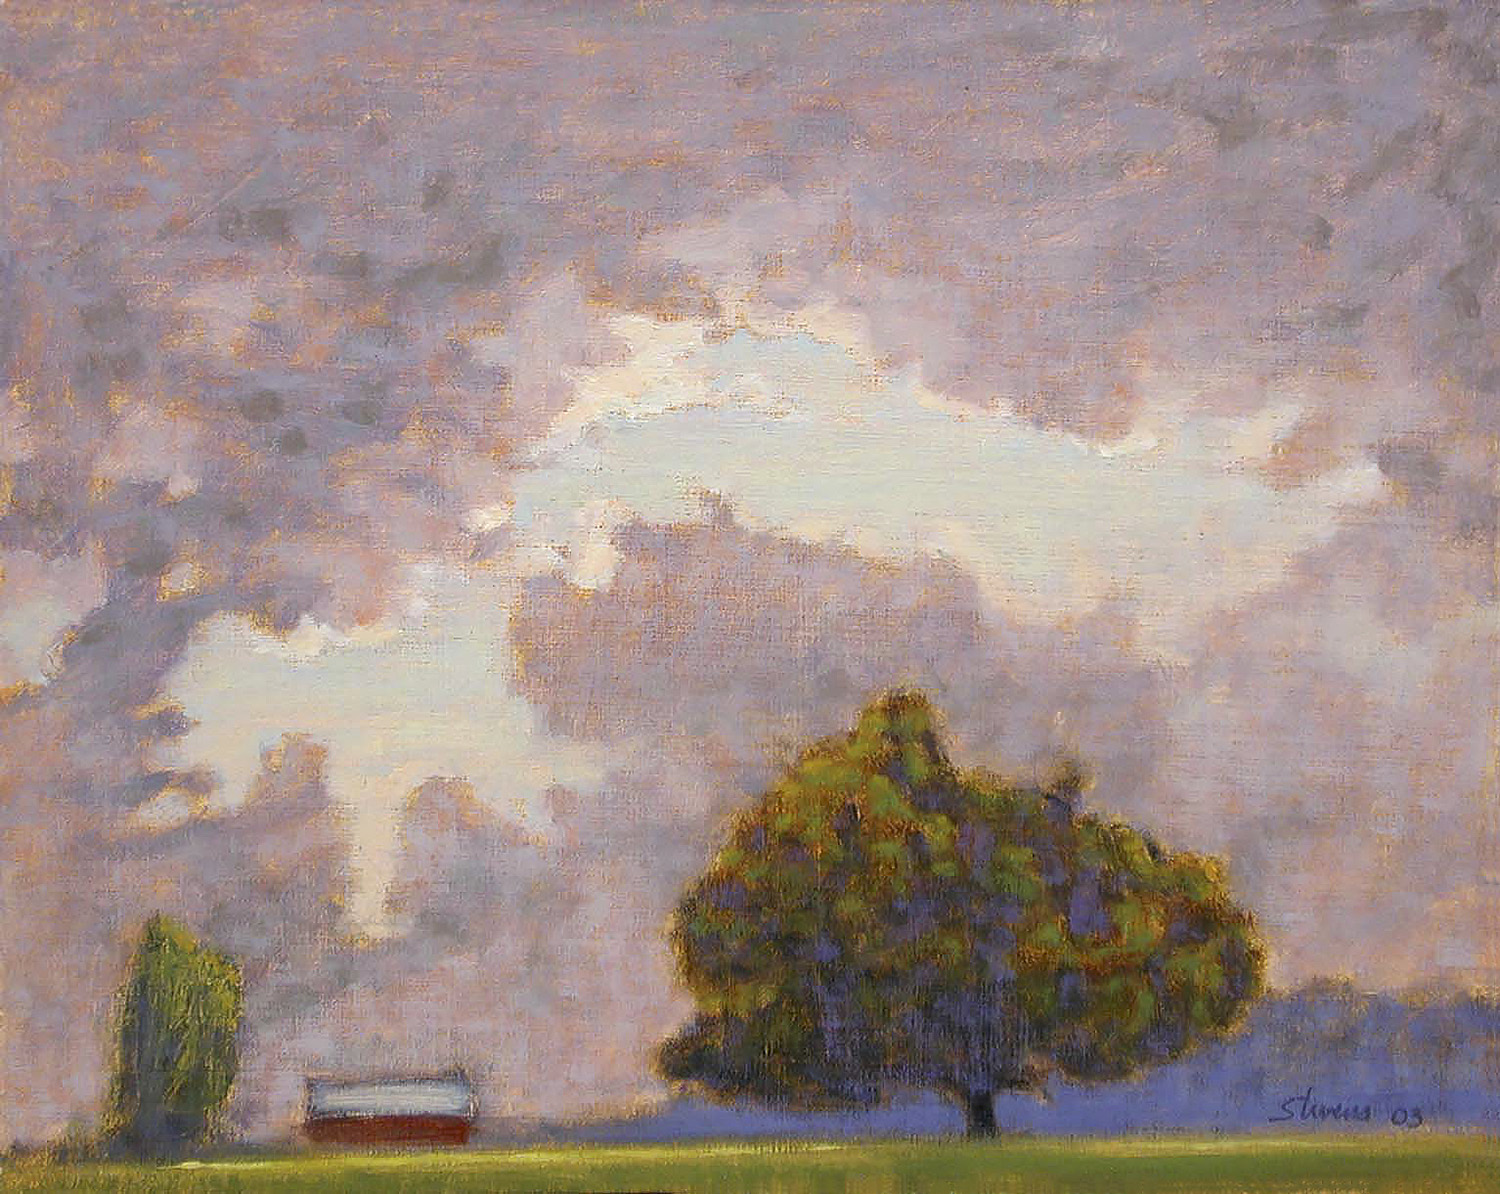 Mumford Farm   | oil on linen | 11 x 14"